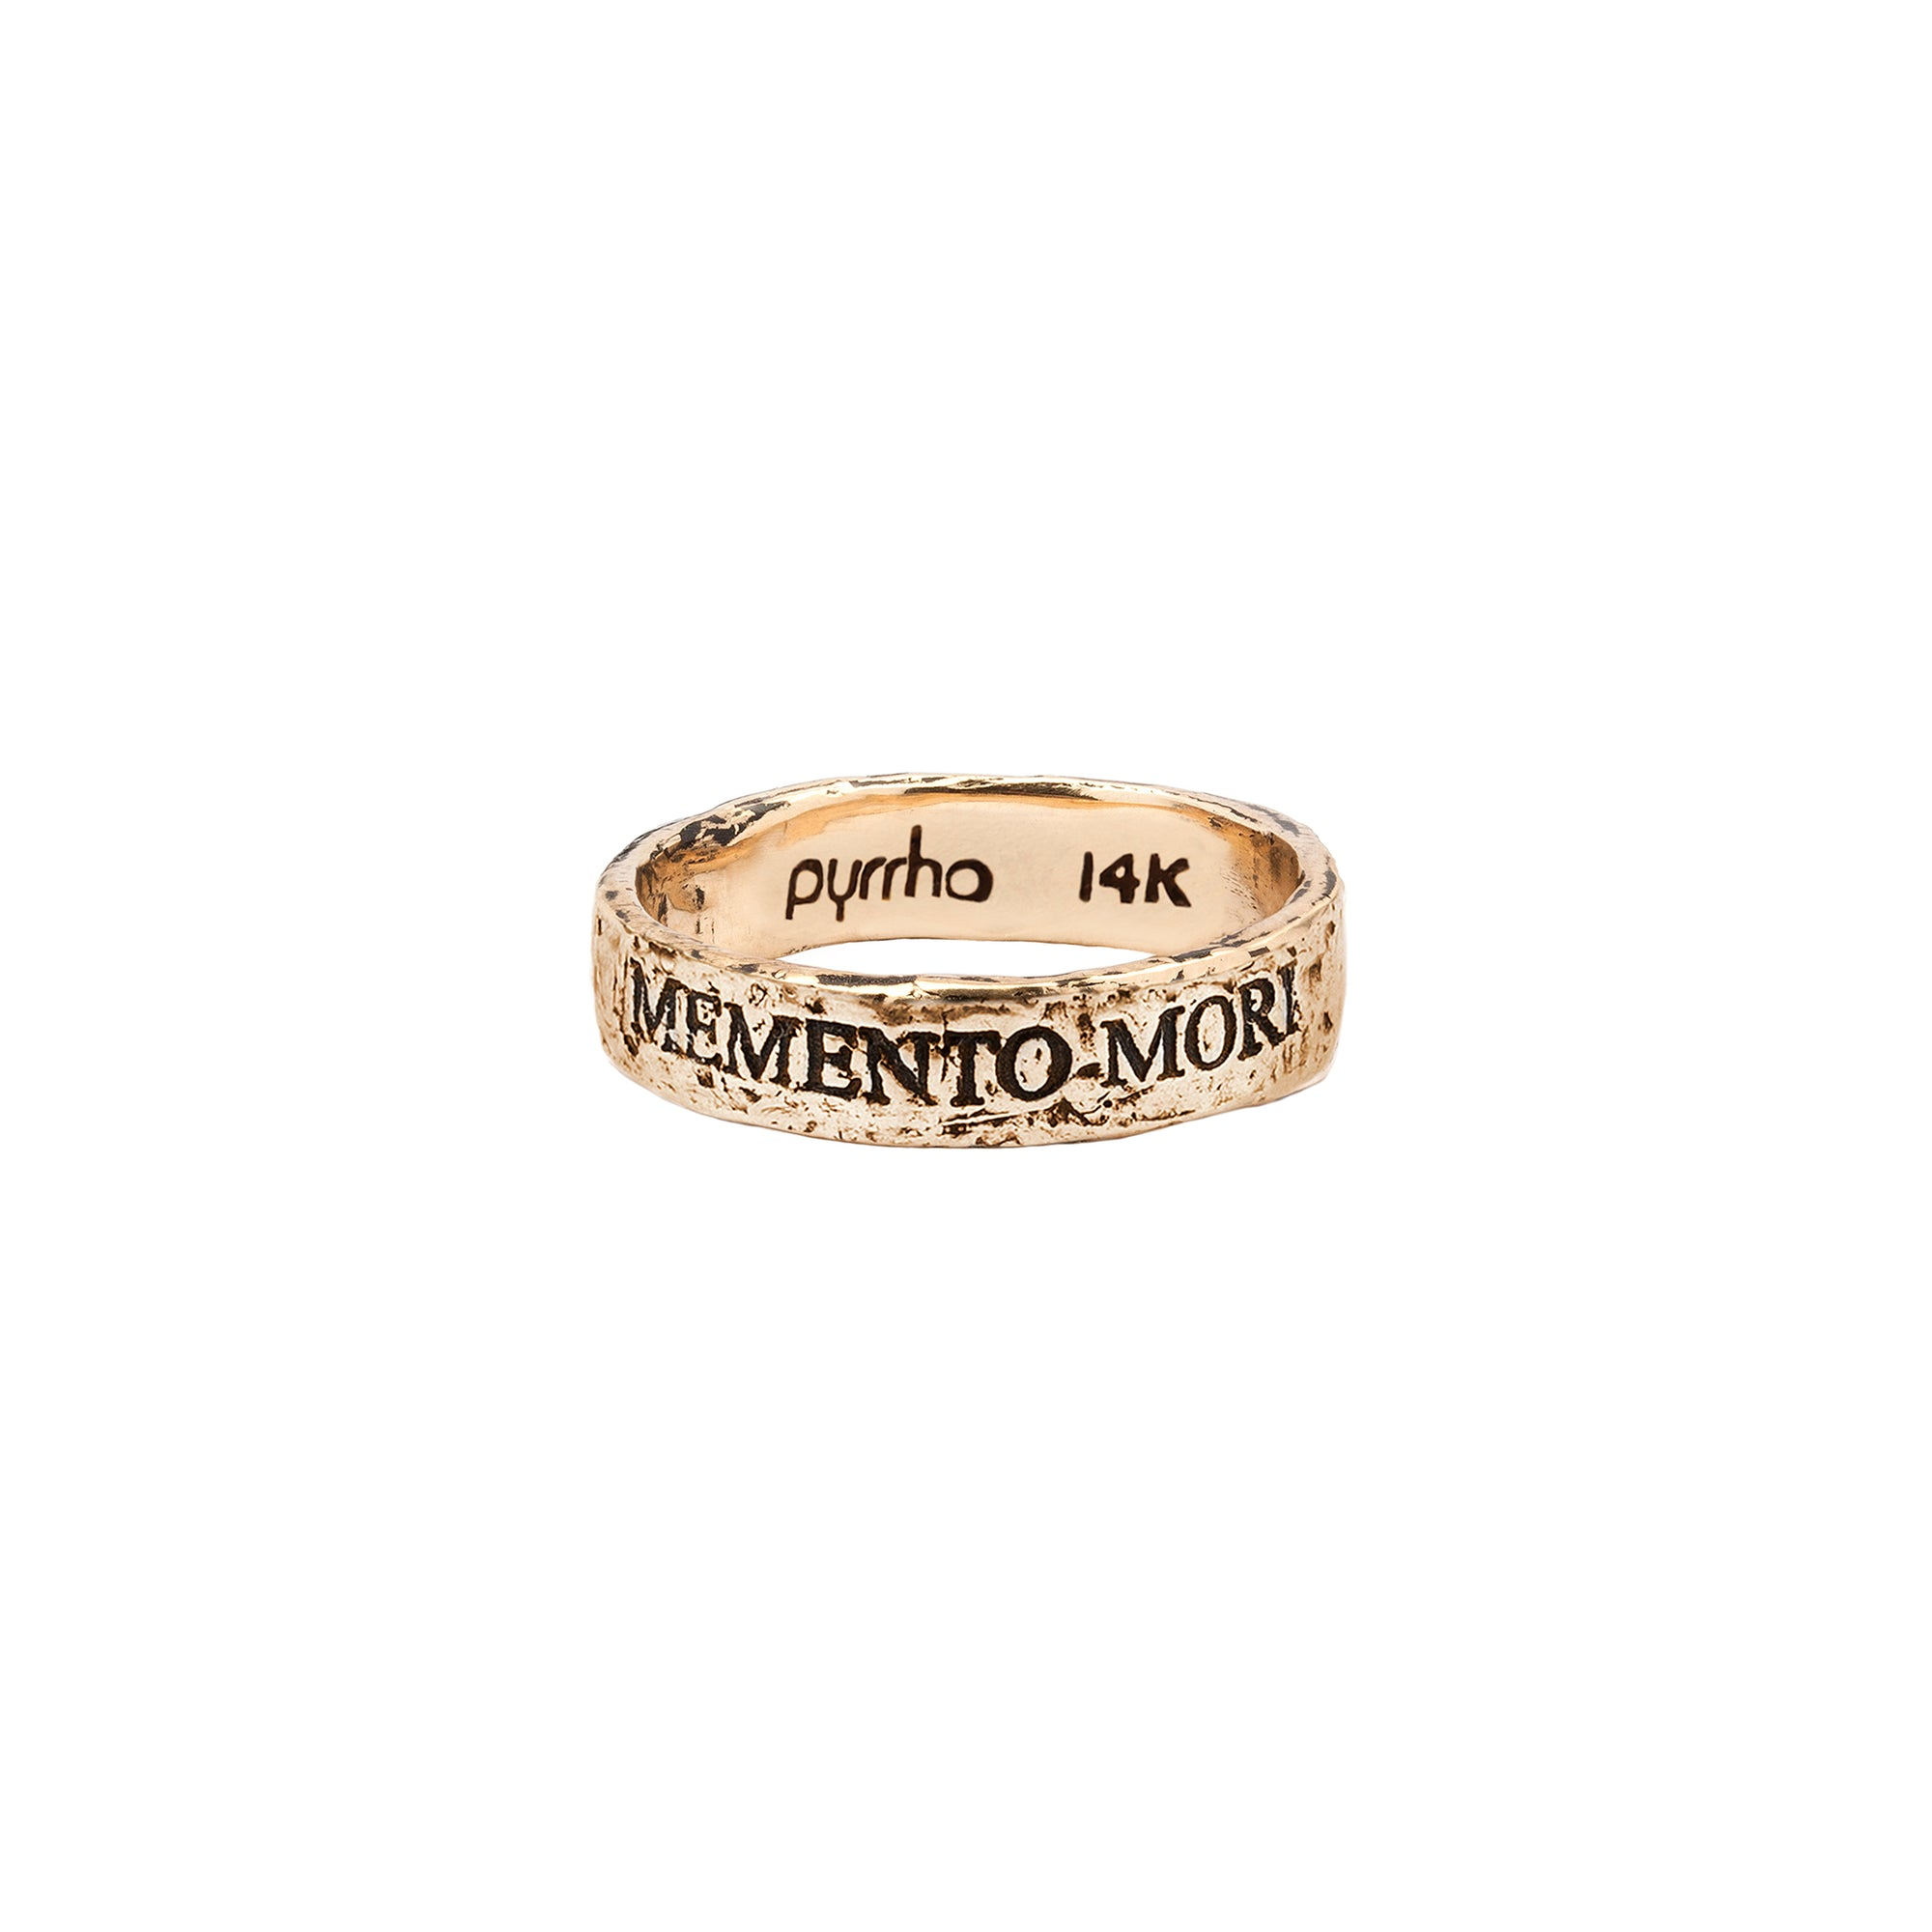 Pyrrha 14k memento mori latin motto band ring